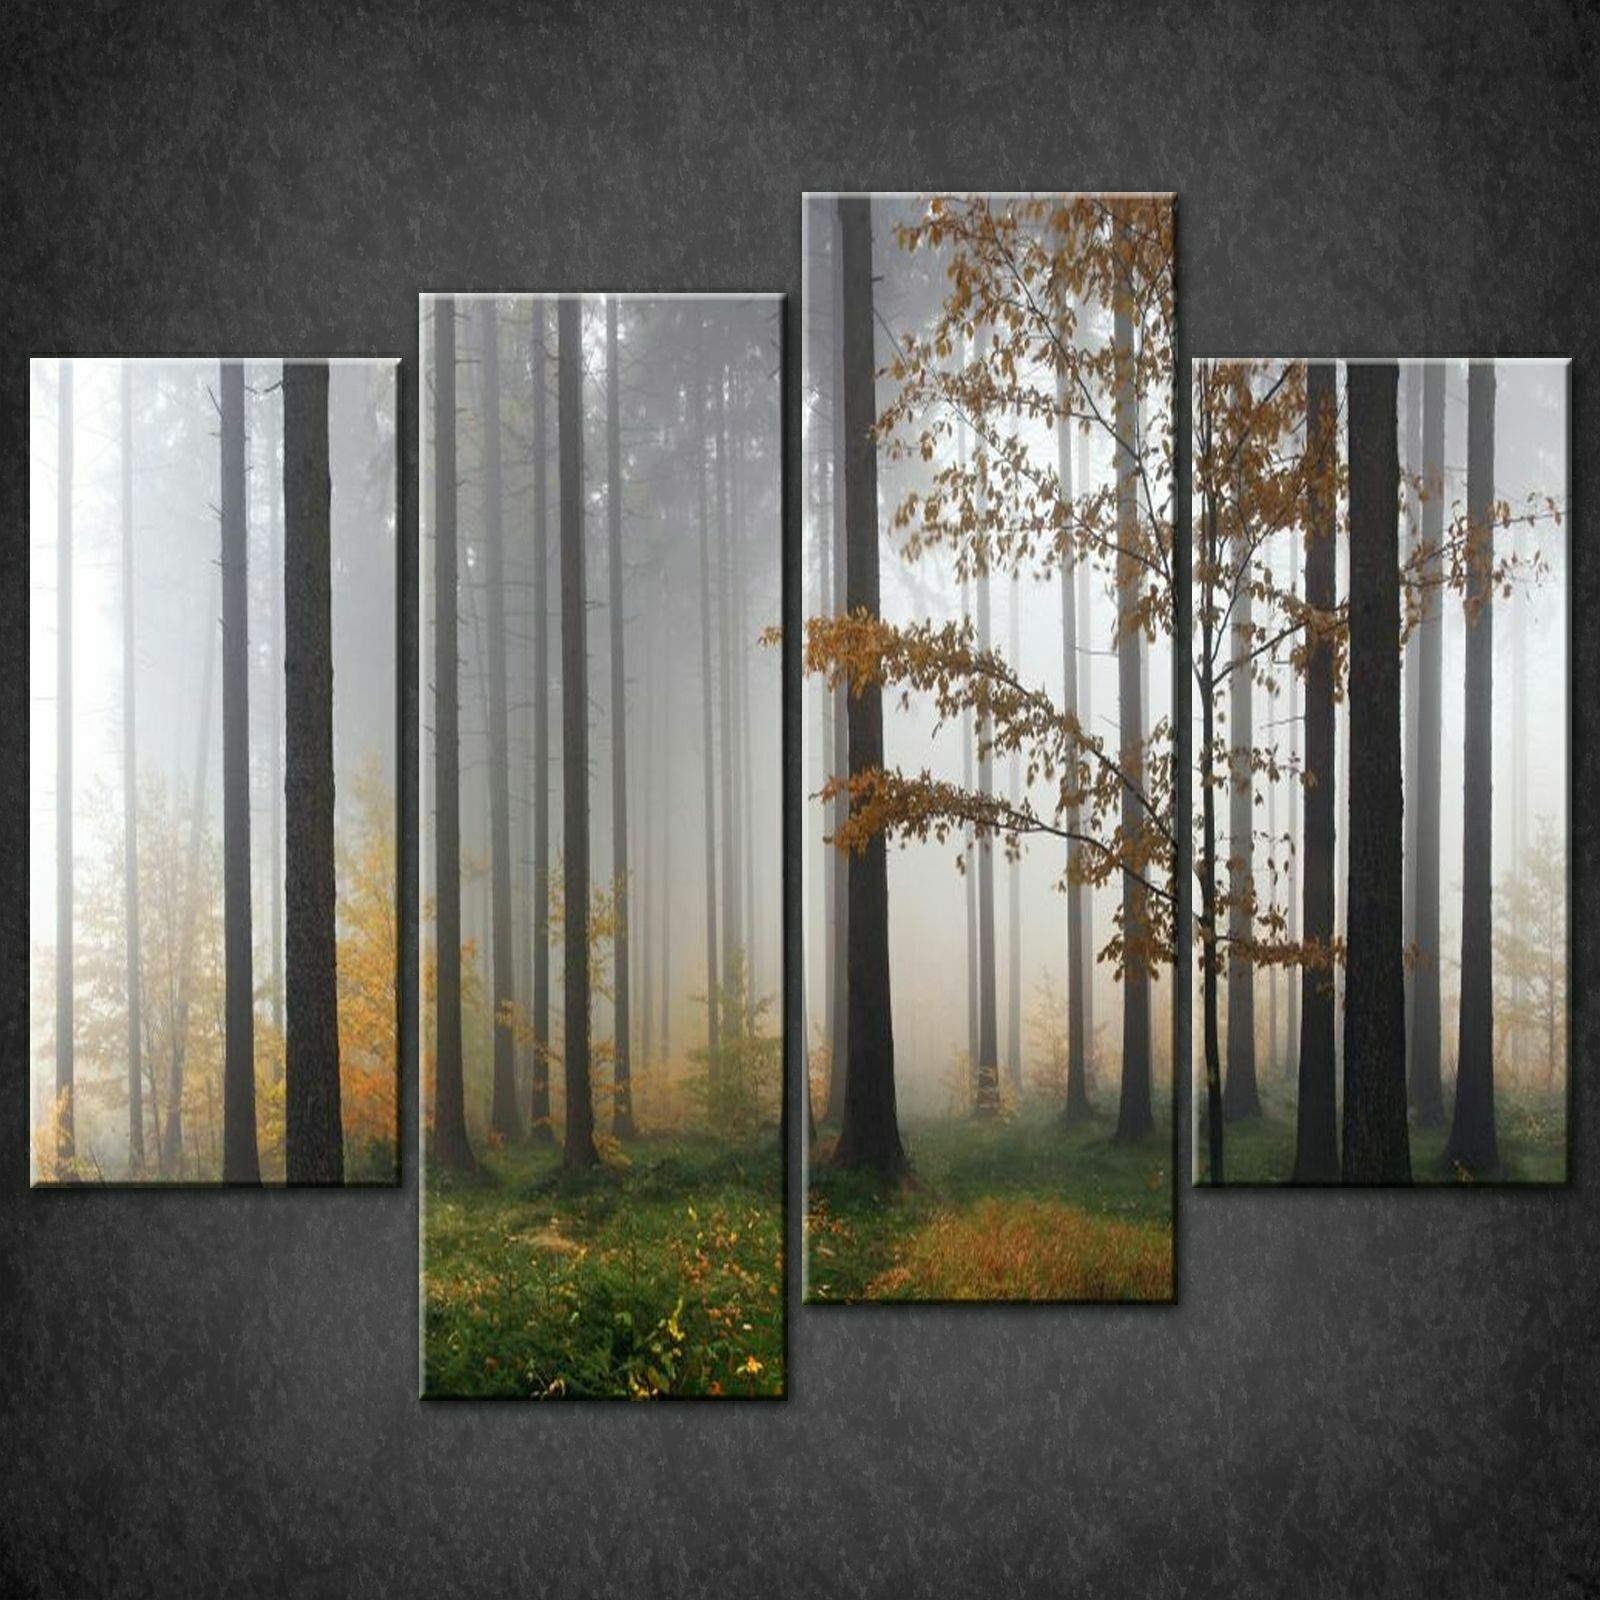 MIST IN FOREST MODERN DESIGN CANVAS PRINT PICTURE WALL ART FREE FAST DELIVERY